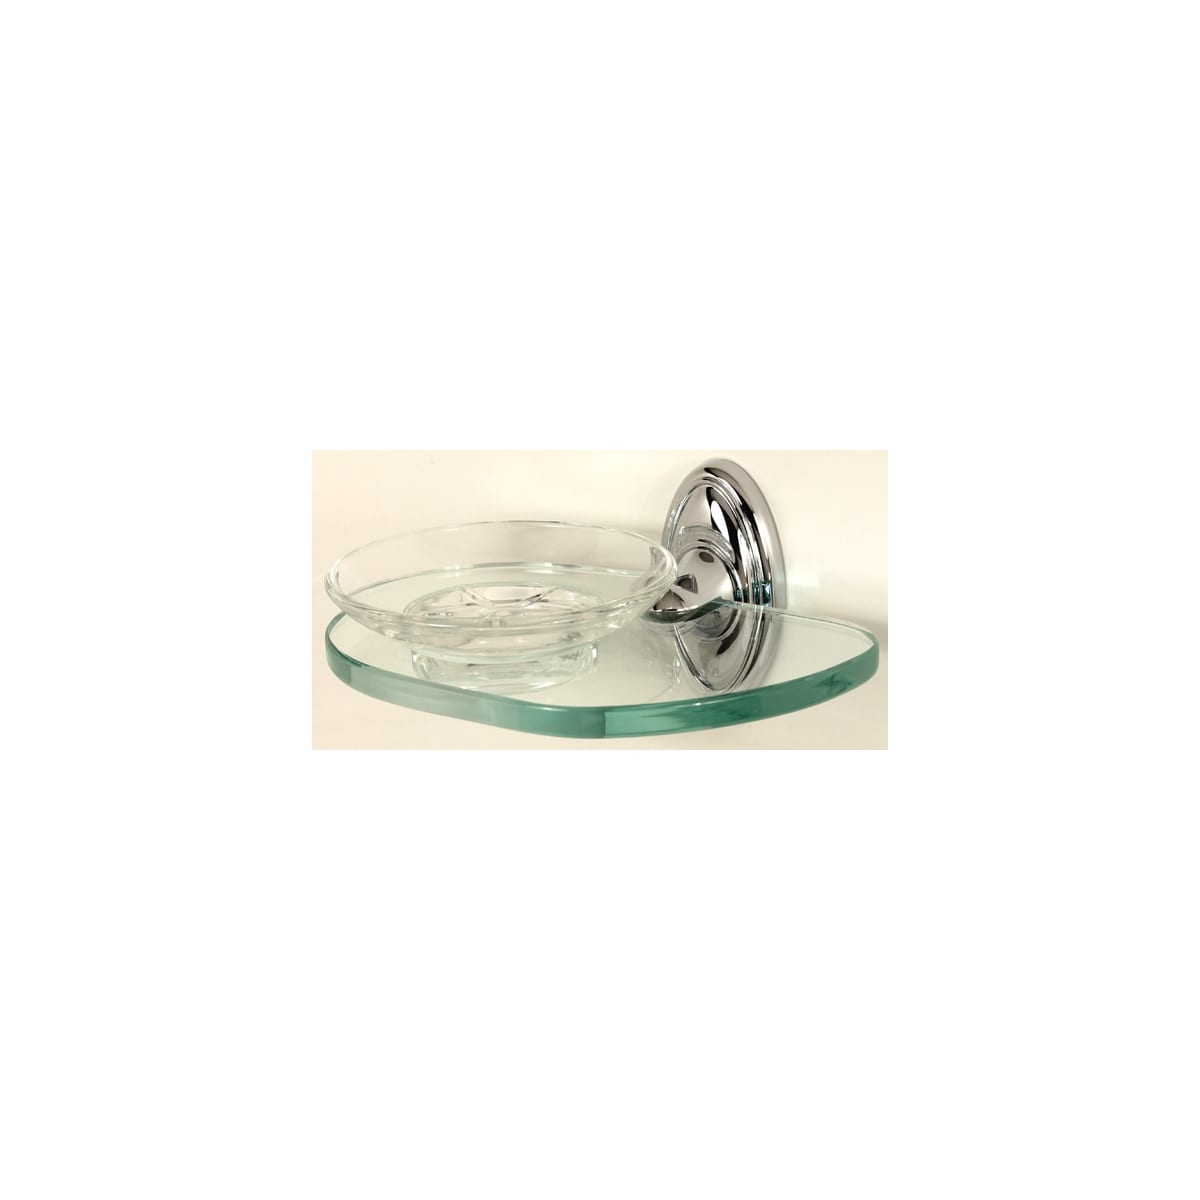 Alno Classic Traditional Wall Mounted Glass Soap Dish with Brass Bracket and Glass Shelf